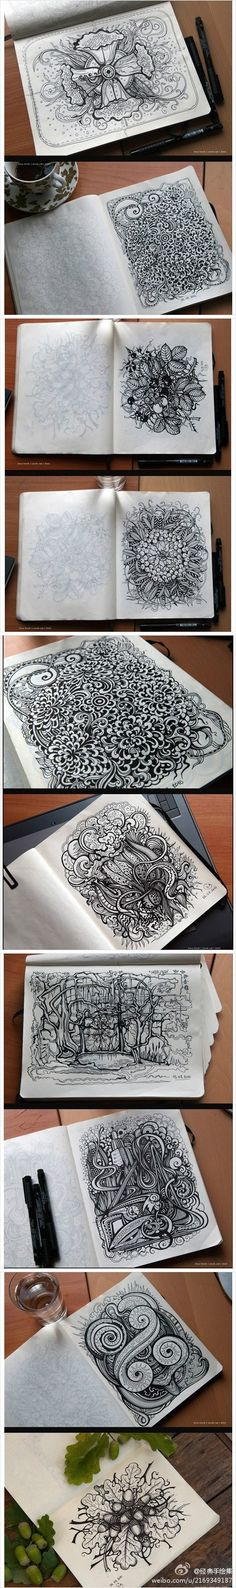 Black and white zentangle